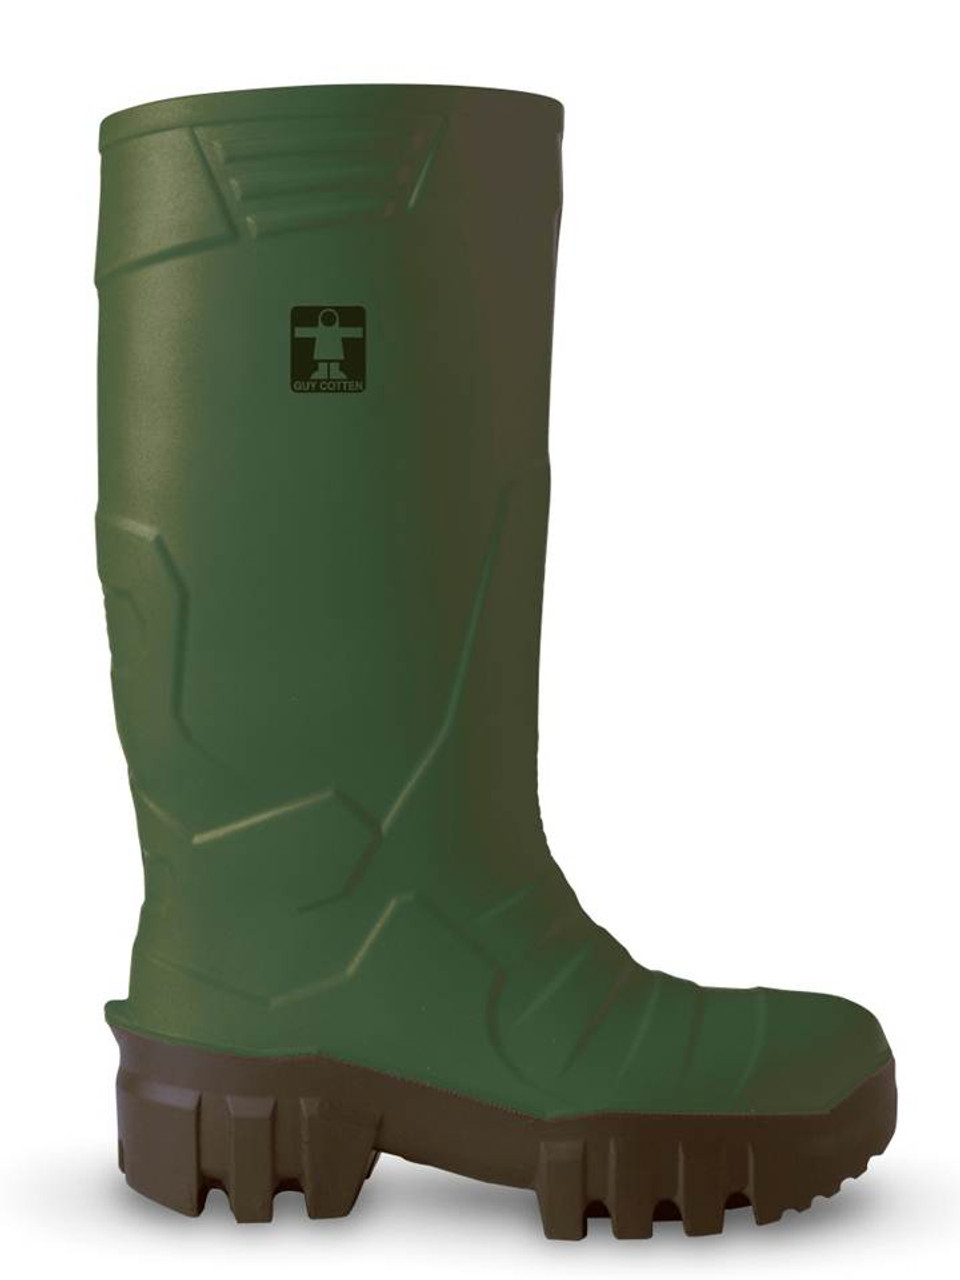 a9fcda88e62 Guy Cotten GC Thermo boots - green